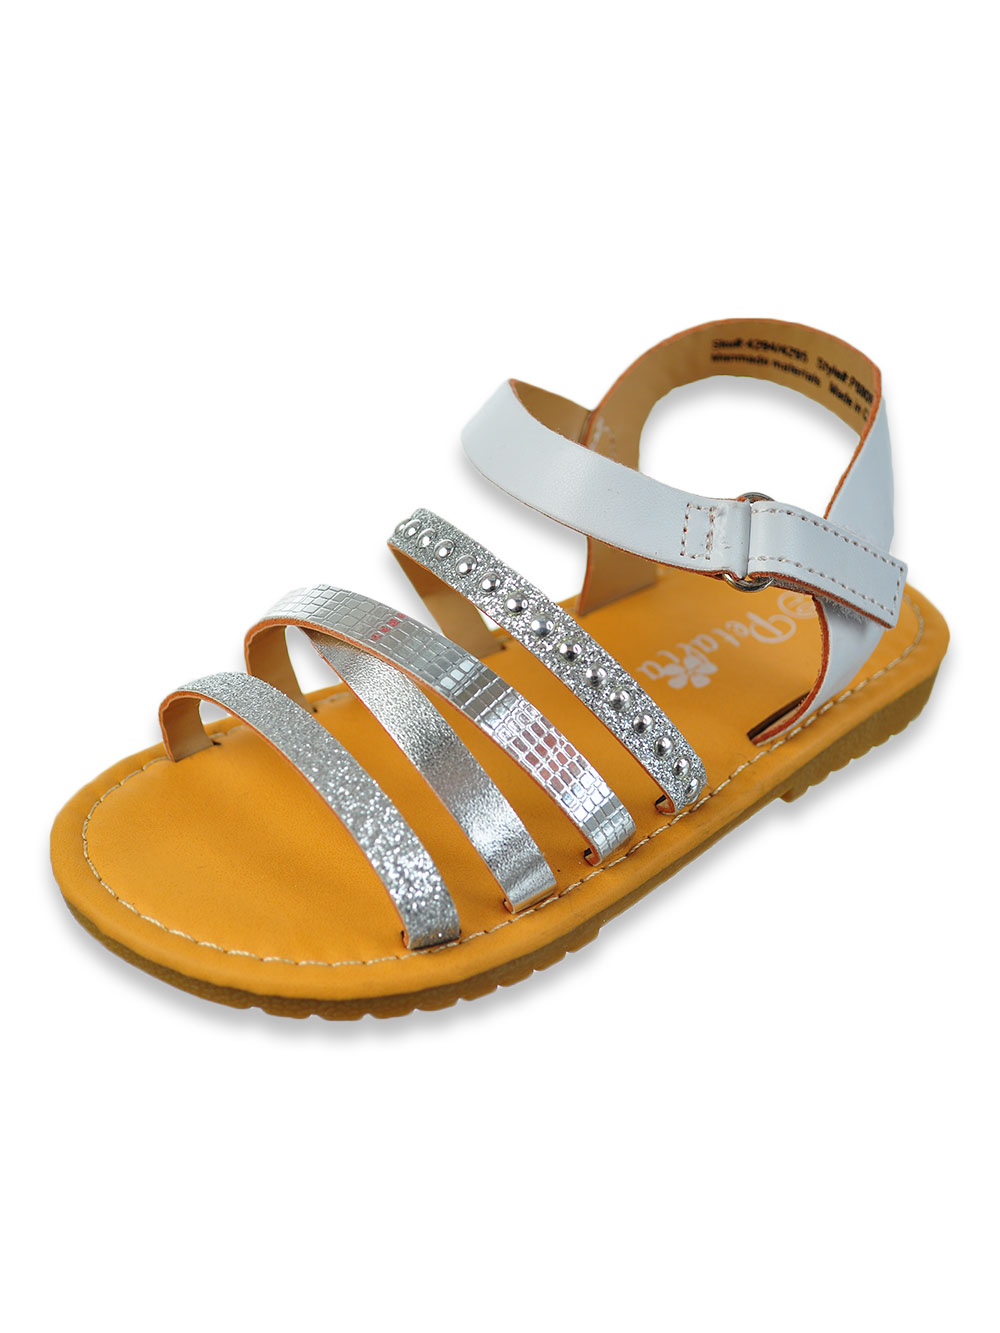 Sandals Glitter Accents